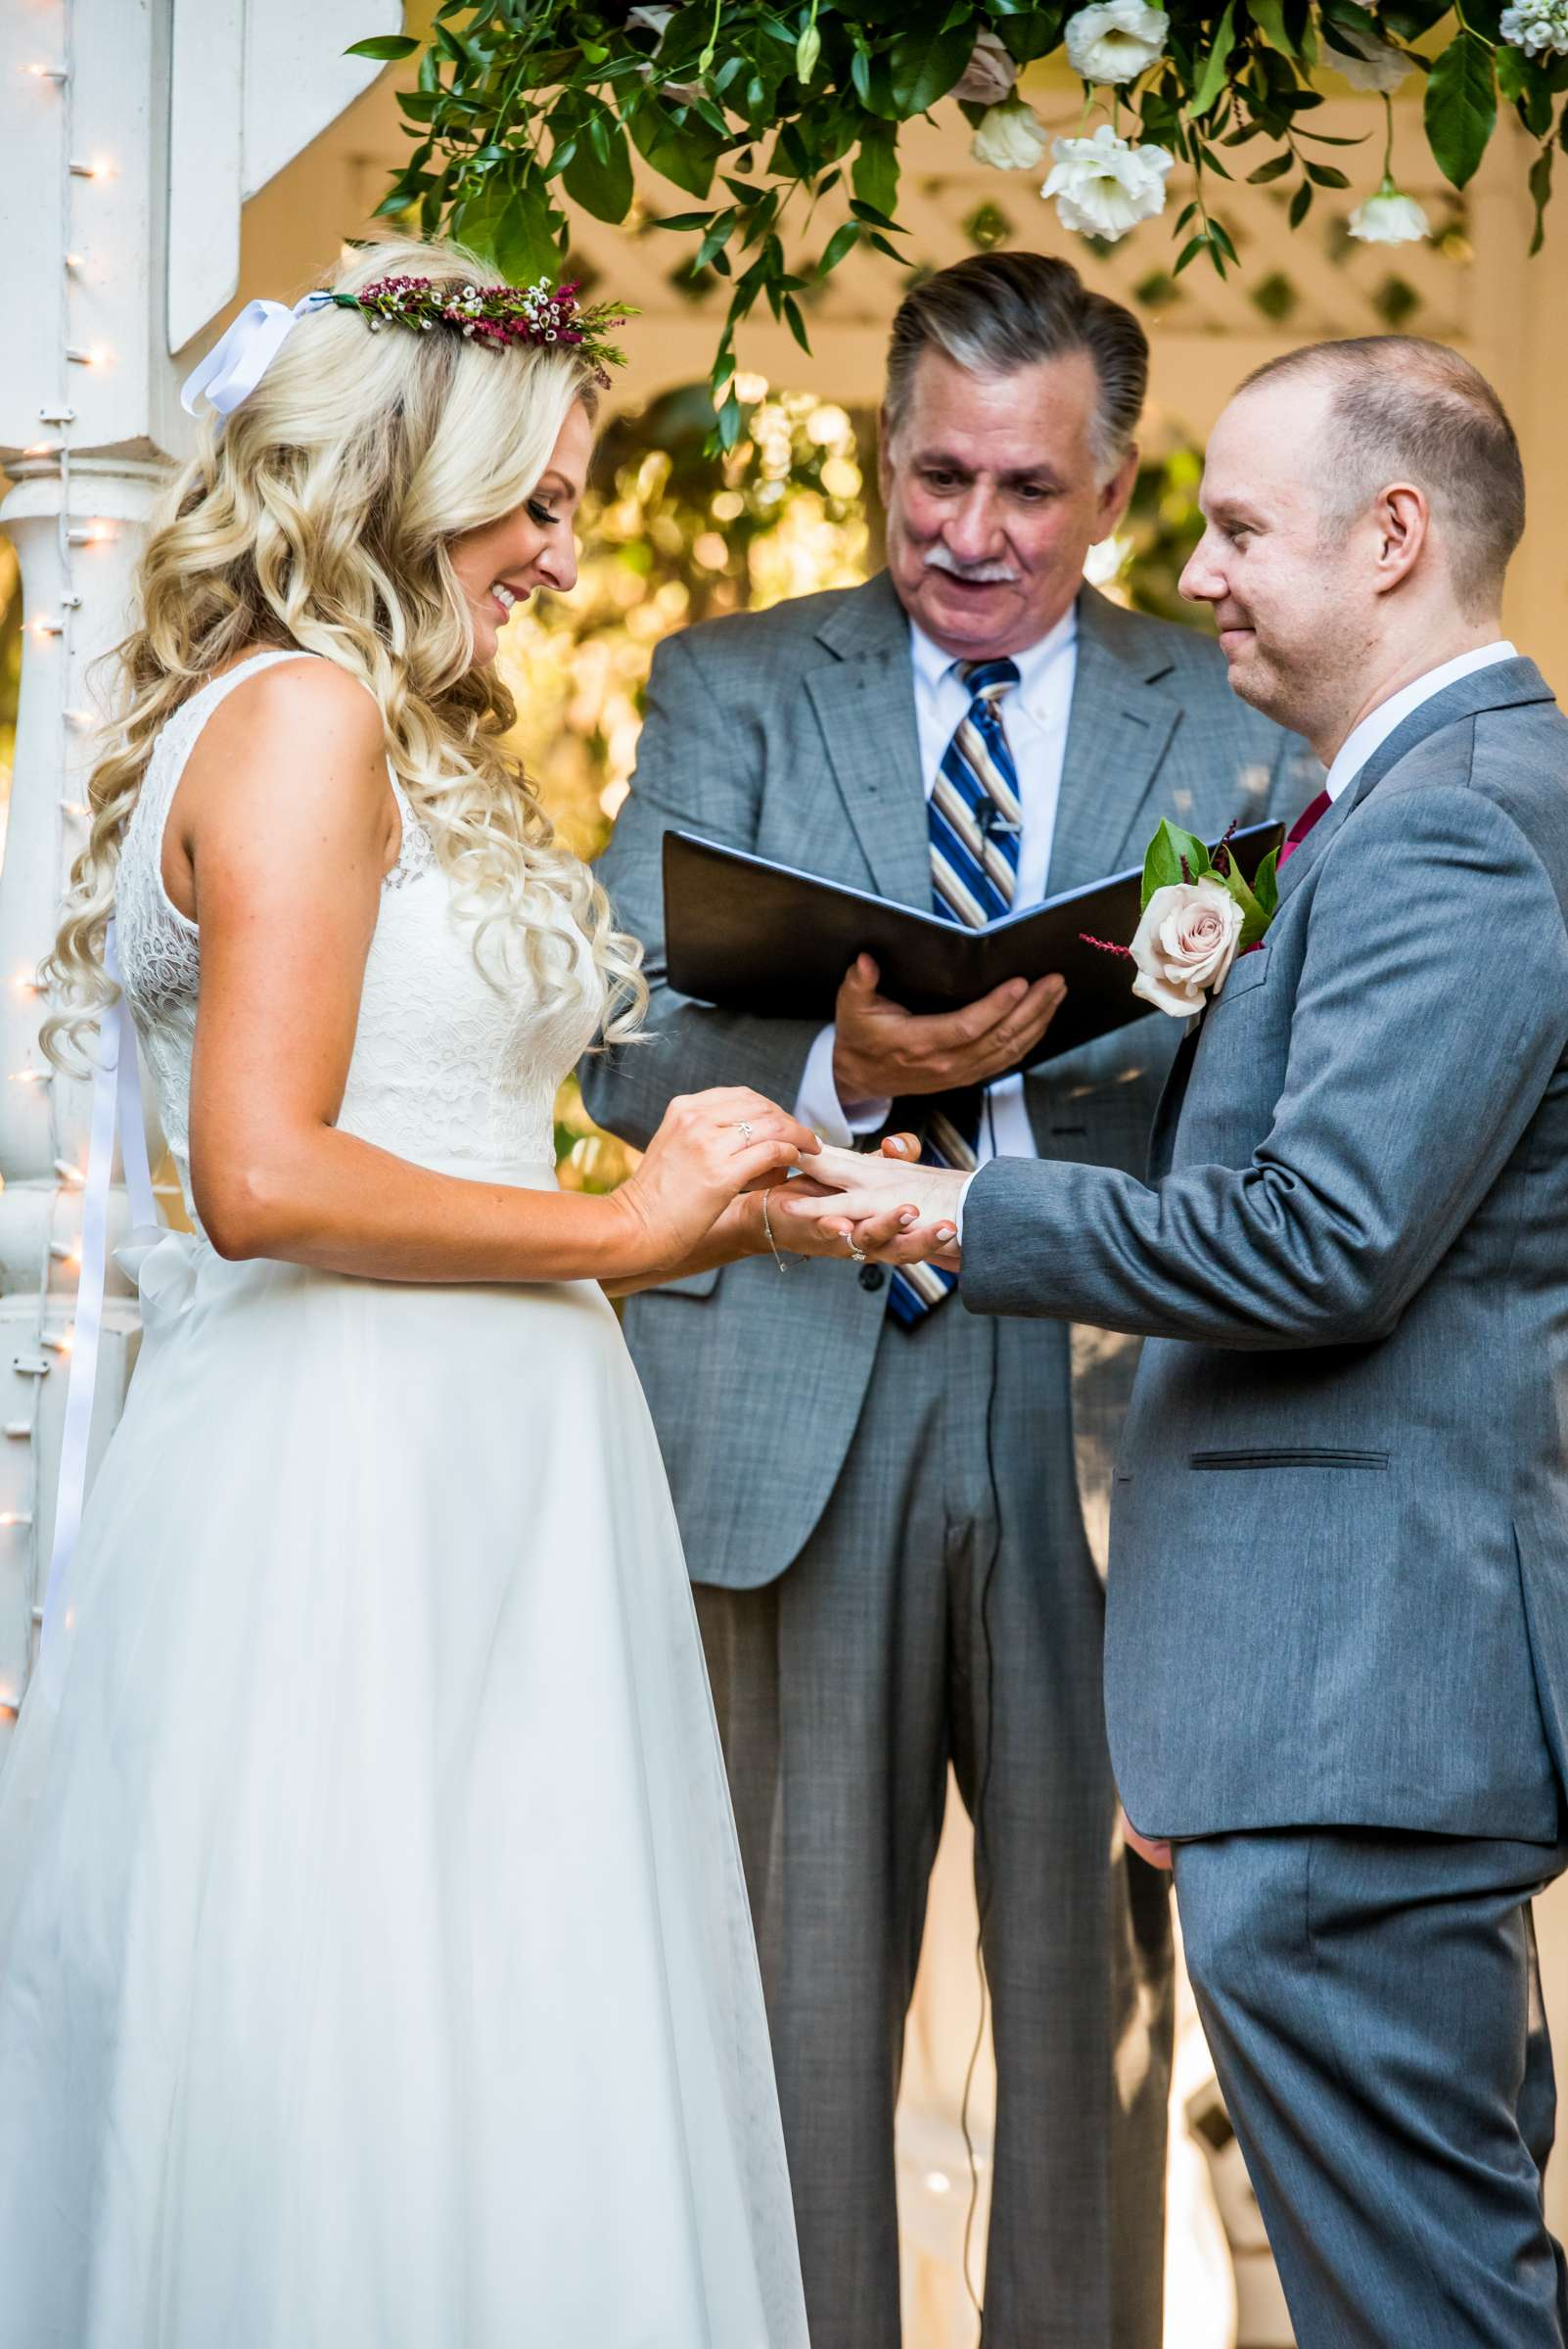 Twin Oaks House & Gardens Wedding Estate Wedding, Brittany and Sean Wedding Photo #90 by True Photography